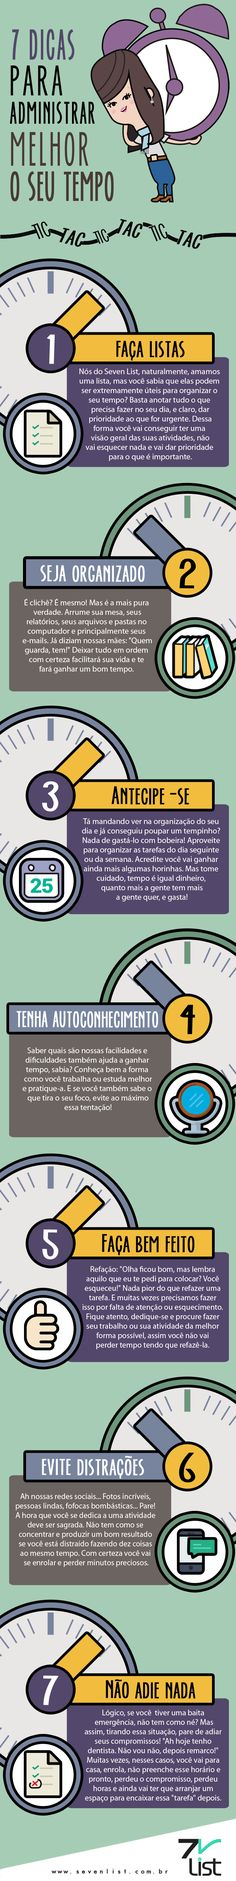 melhores dicas para administração do tempo do estudo e para tudo Self Development, Personal Development, Success, Student Life, Study Tips, Time Management, Better Life, Good To Know, Just In Case